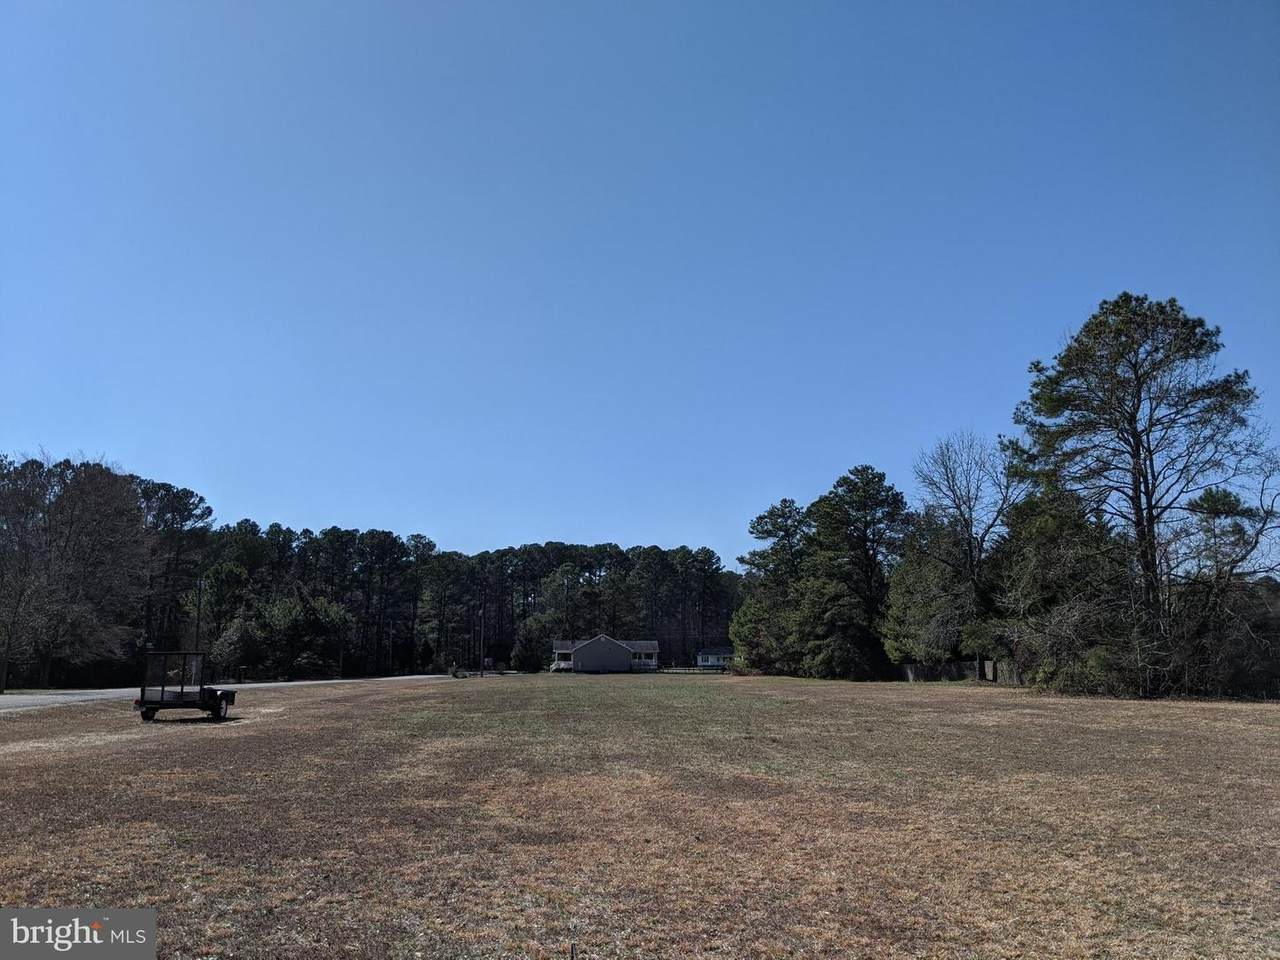 LOT 159 Parrish Loop - Photo 1